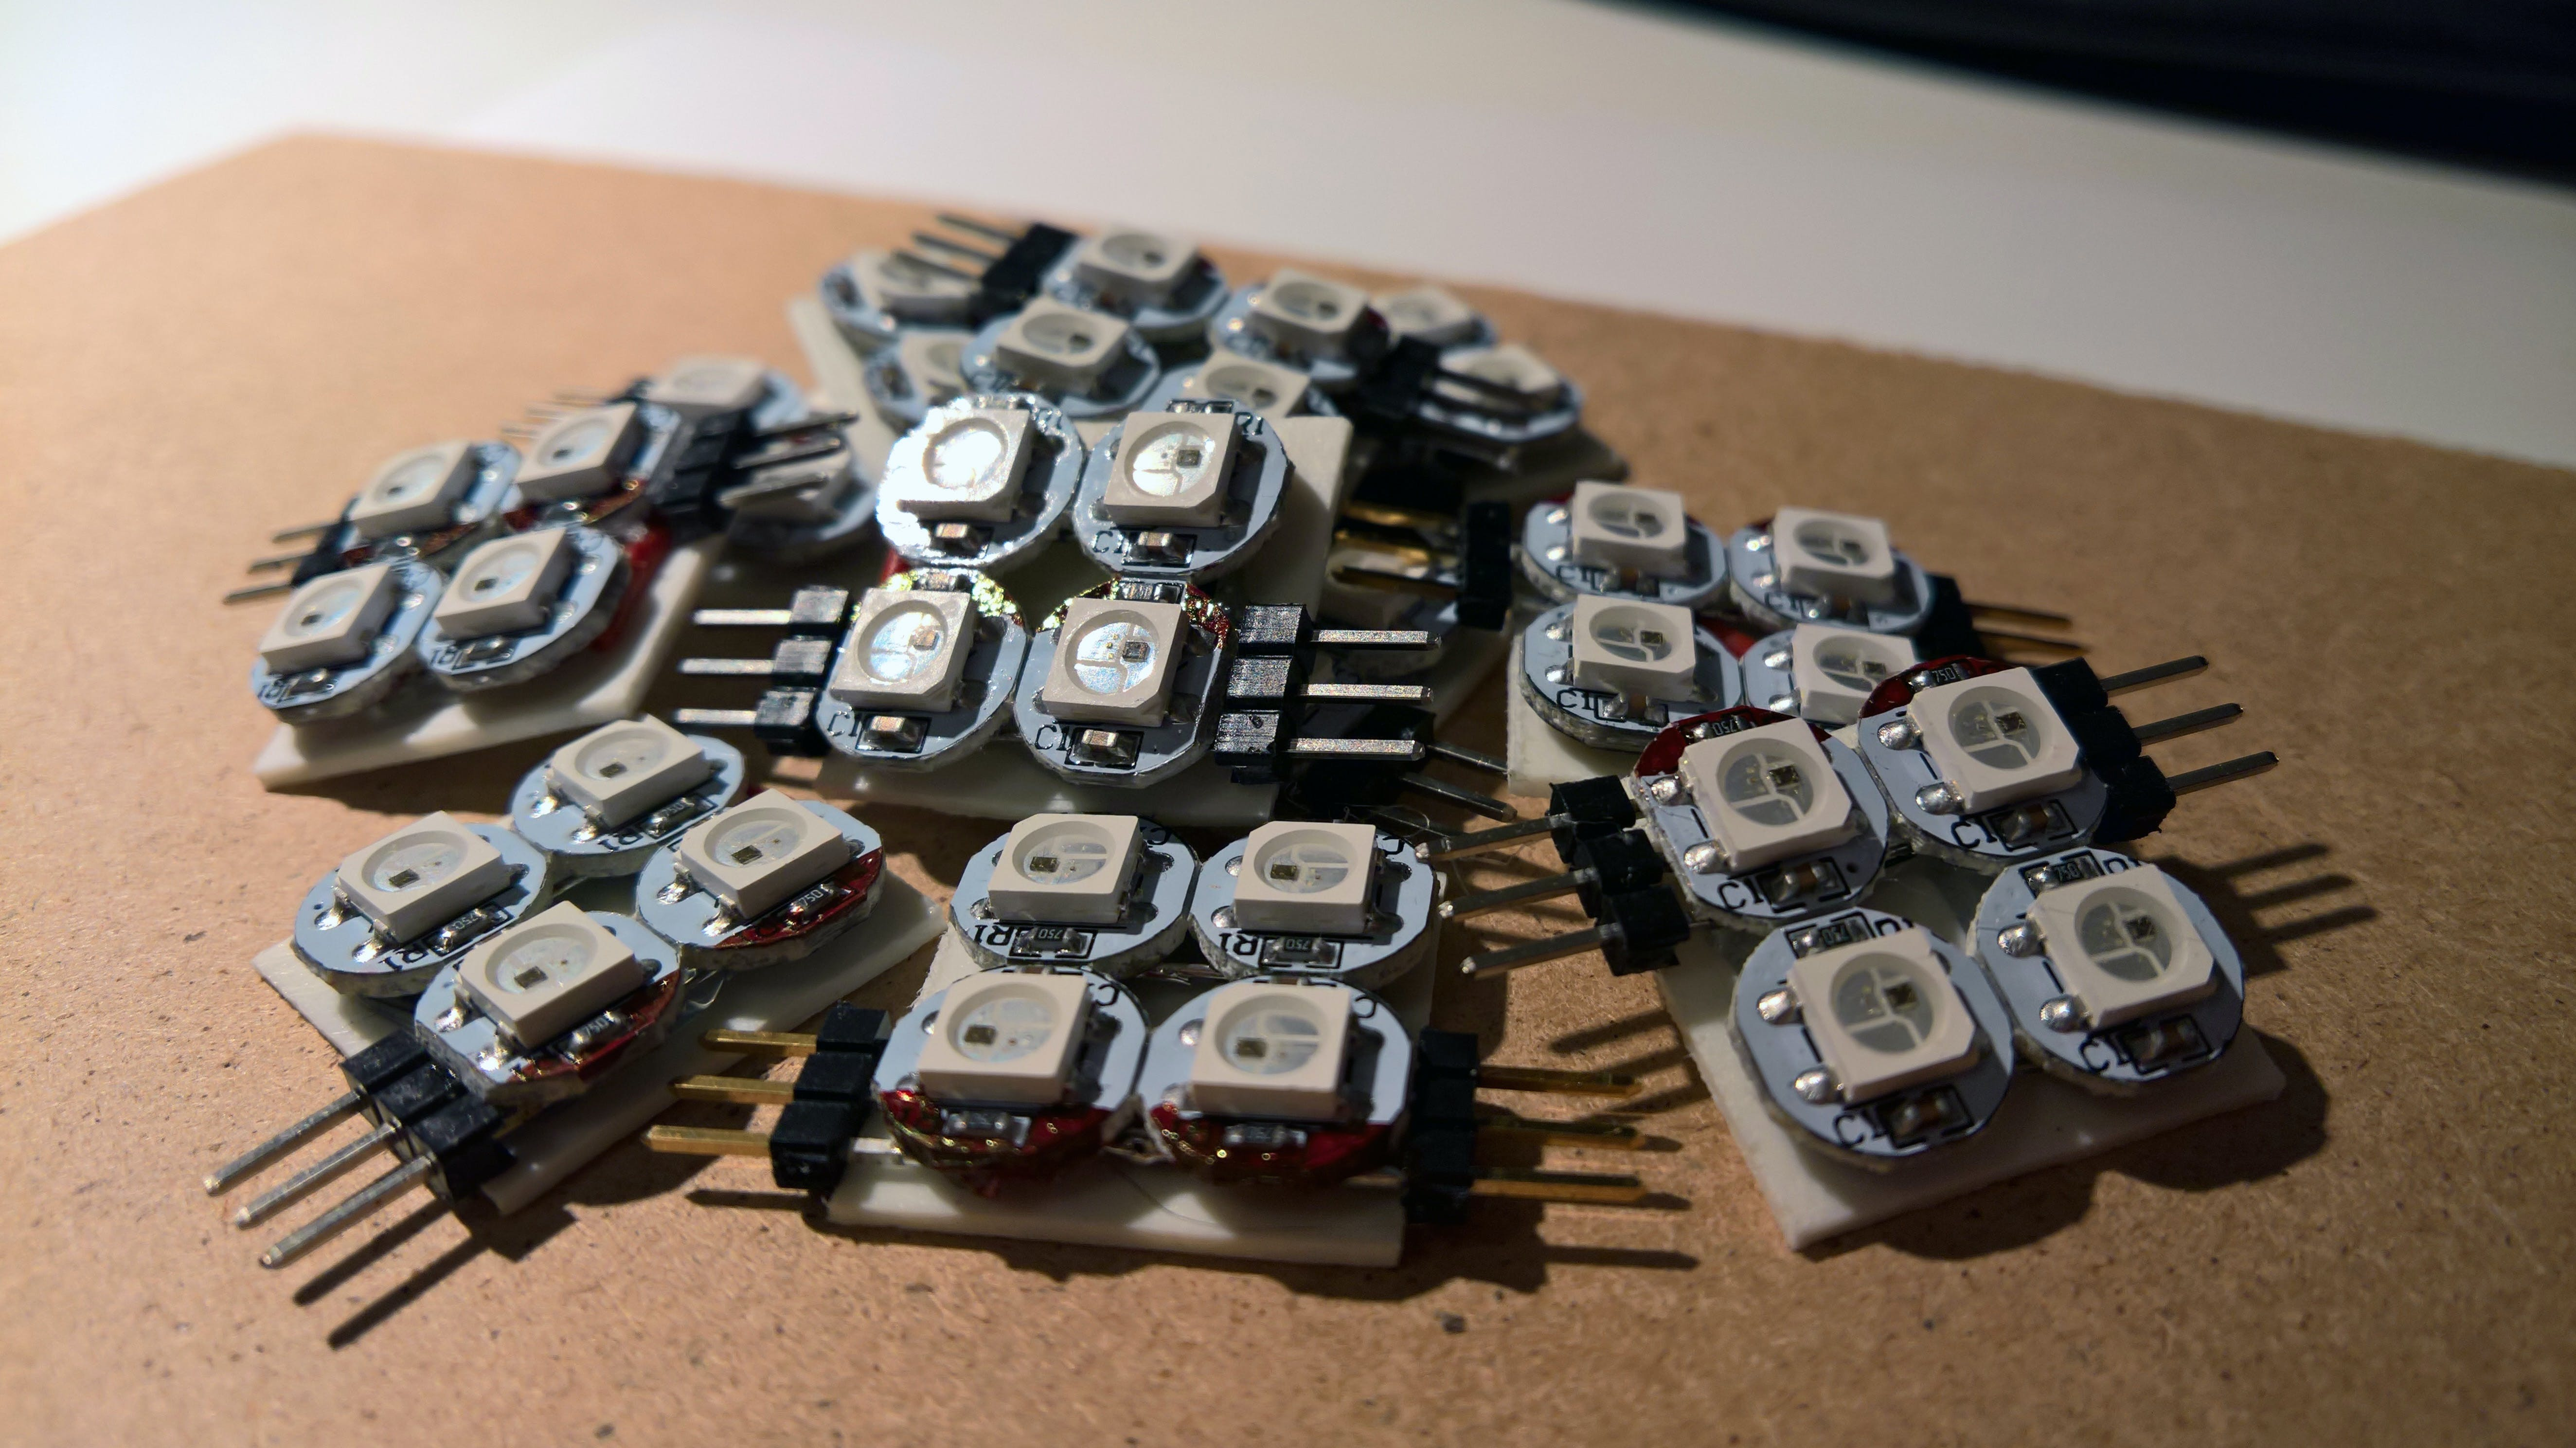 The eleven completed LED modules